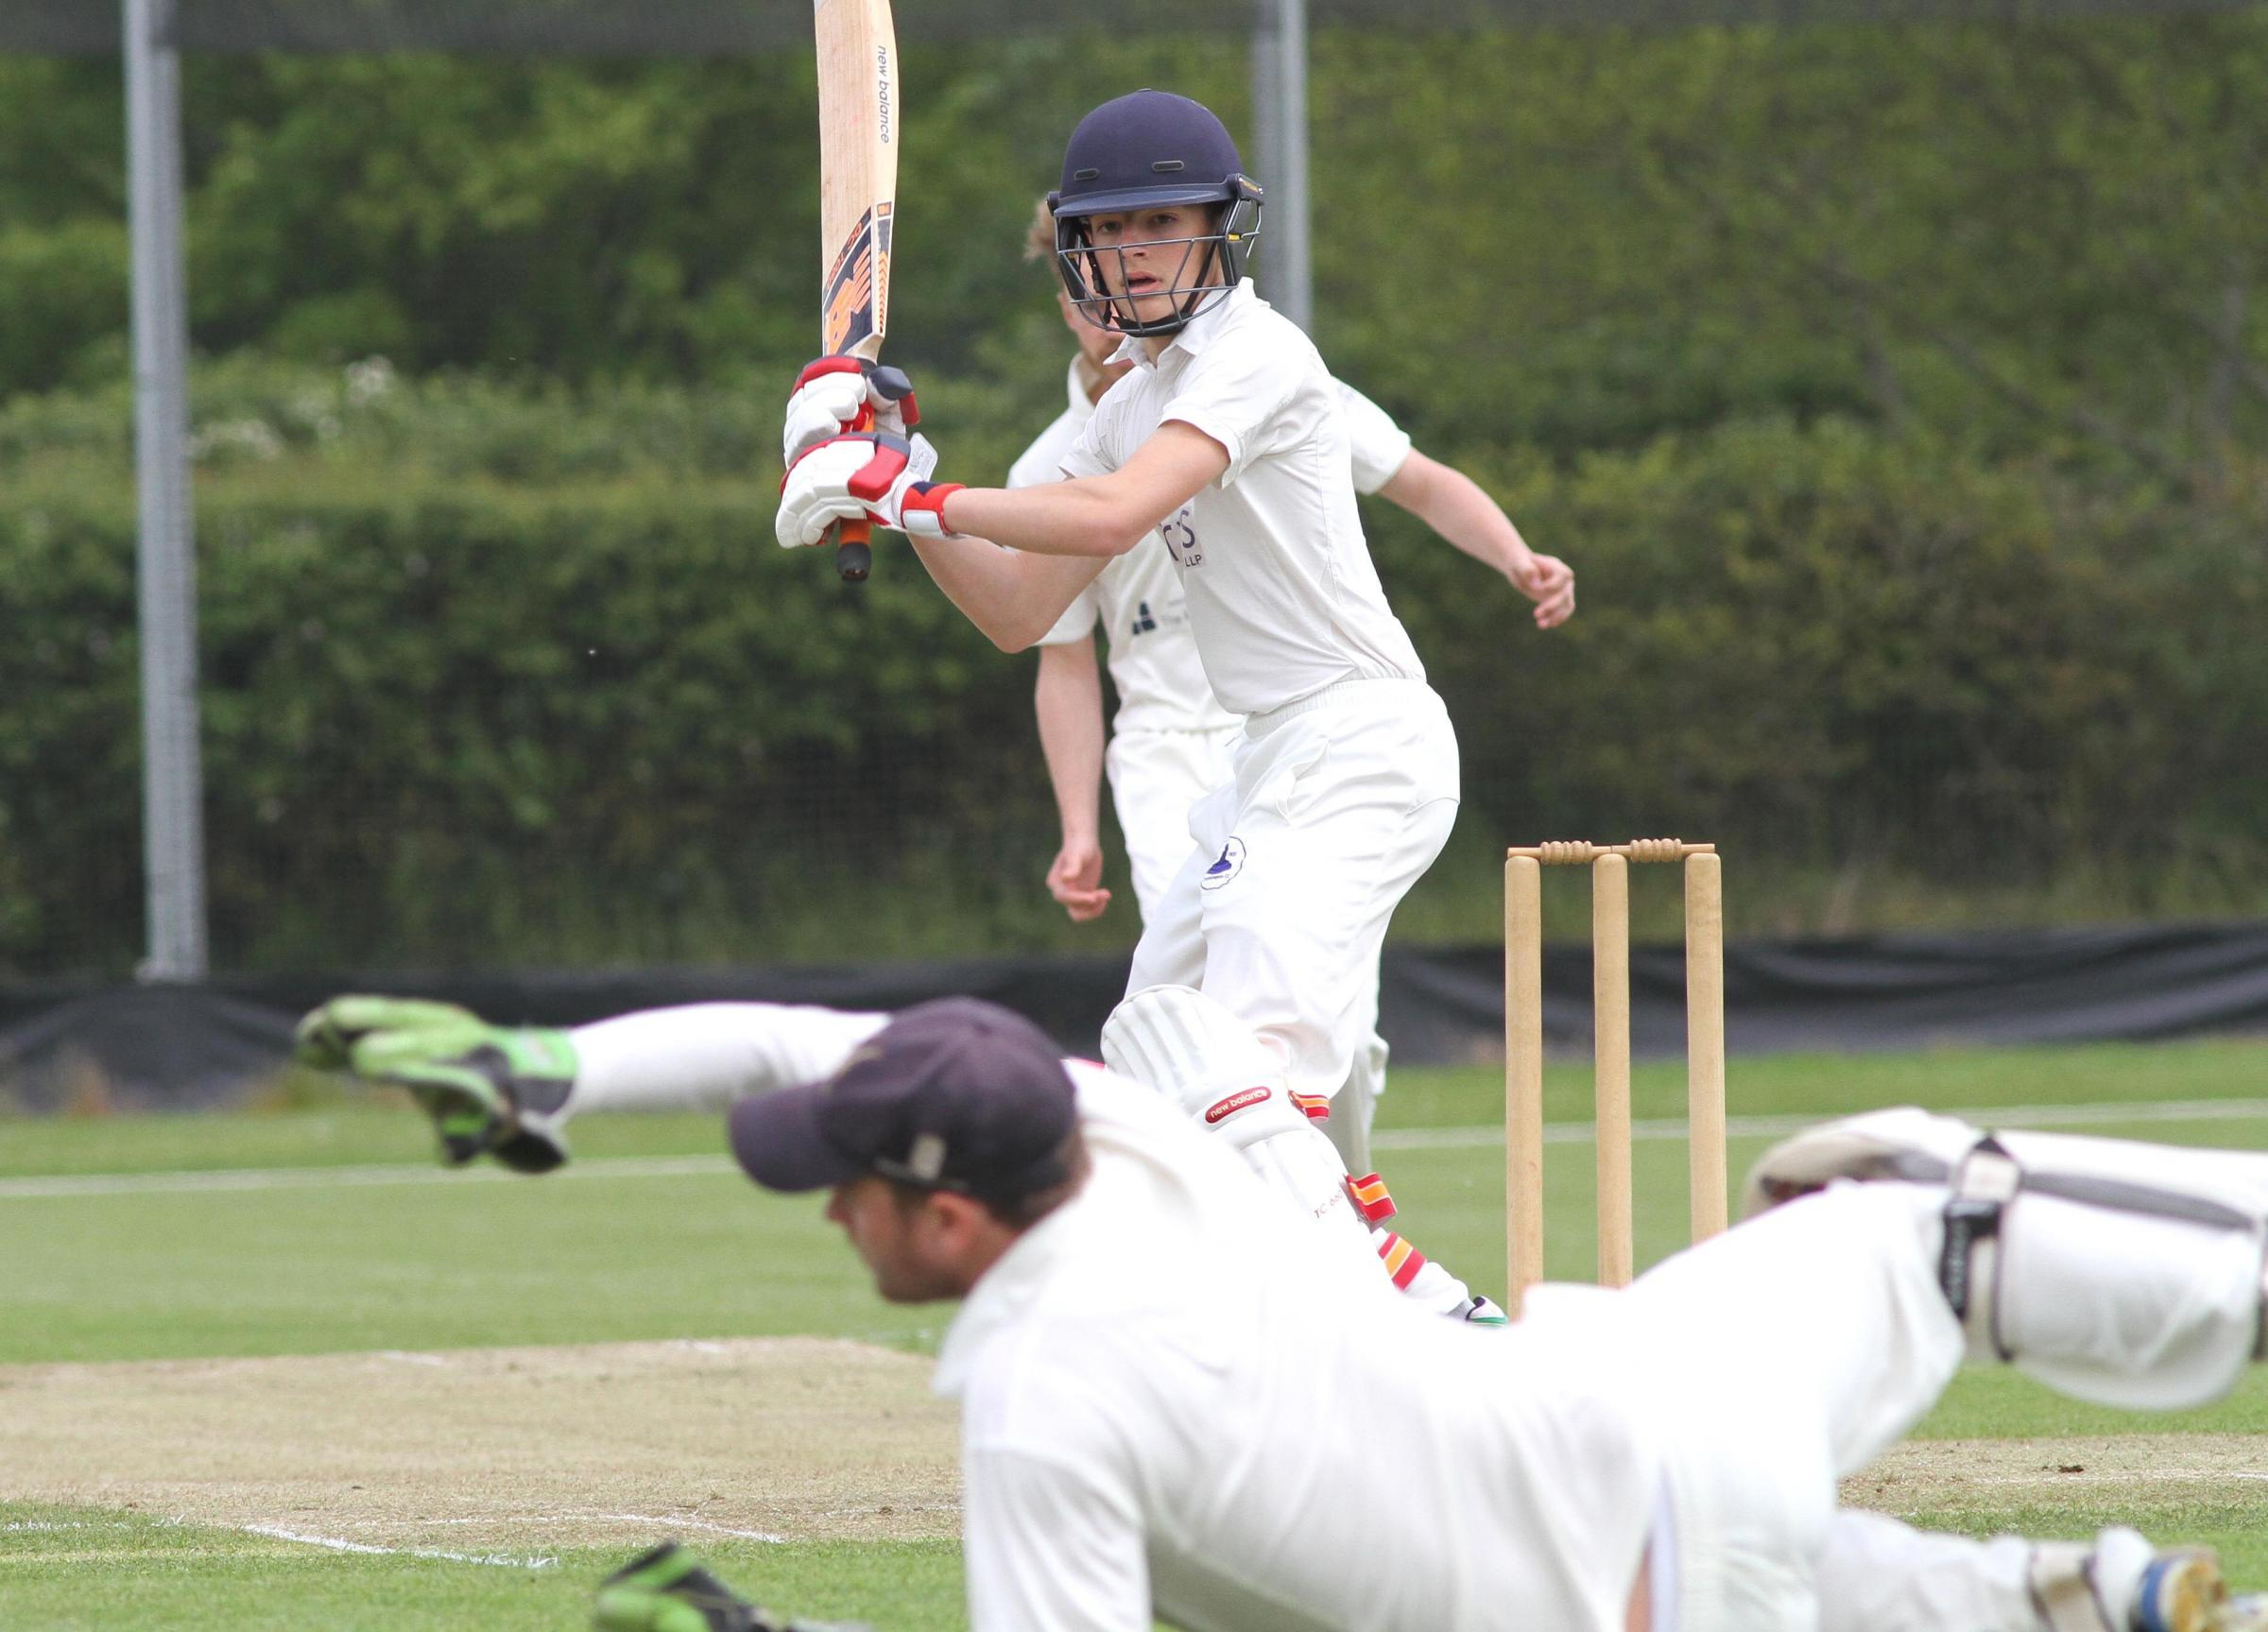 RUN OUT: Dunnington's Harrison Mussell, who was run out for 26 as Dunnington Academy were unable to end Bubwith's winning start to the Foss Evening League division one season